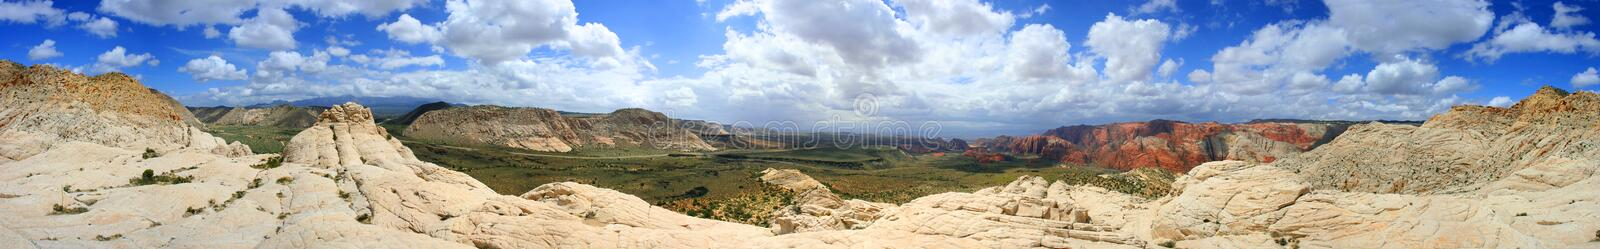 Panoramic View of Snow Canyon - Utah royalty free stock photo